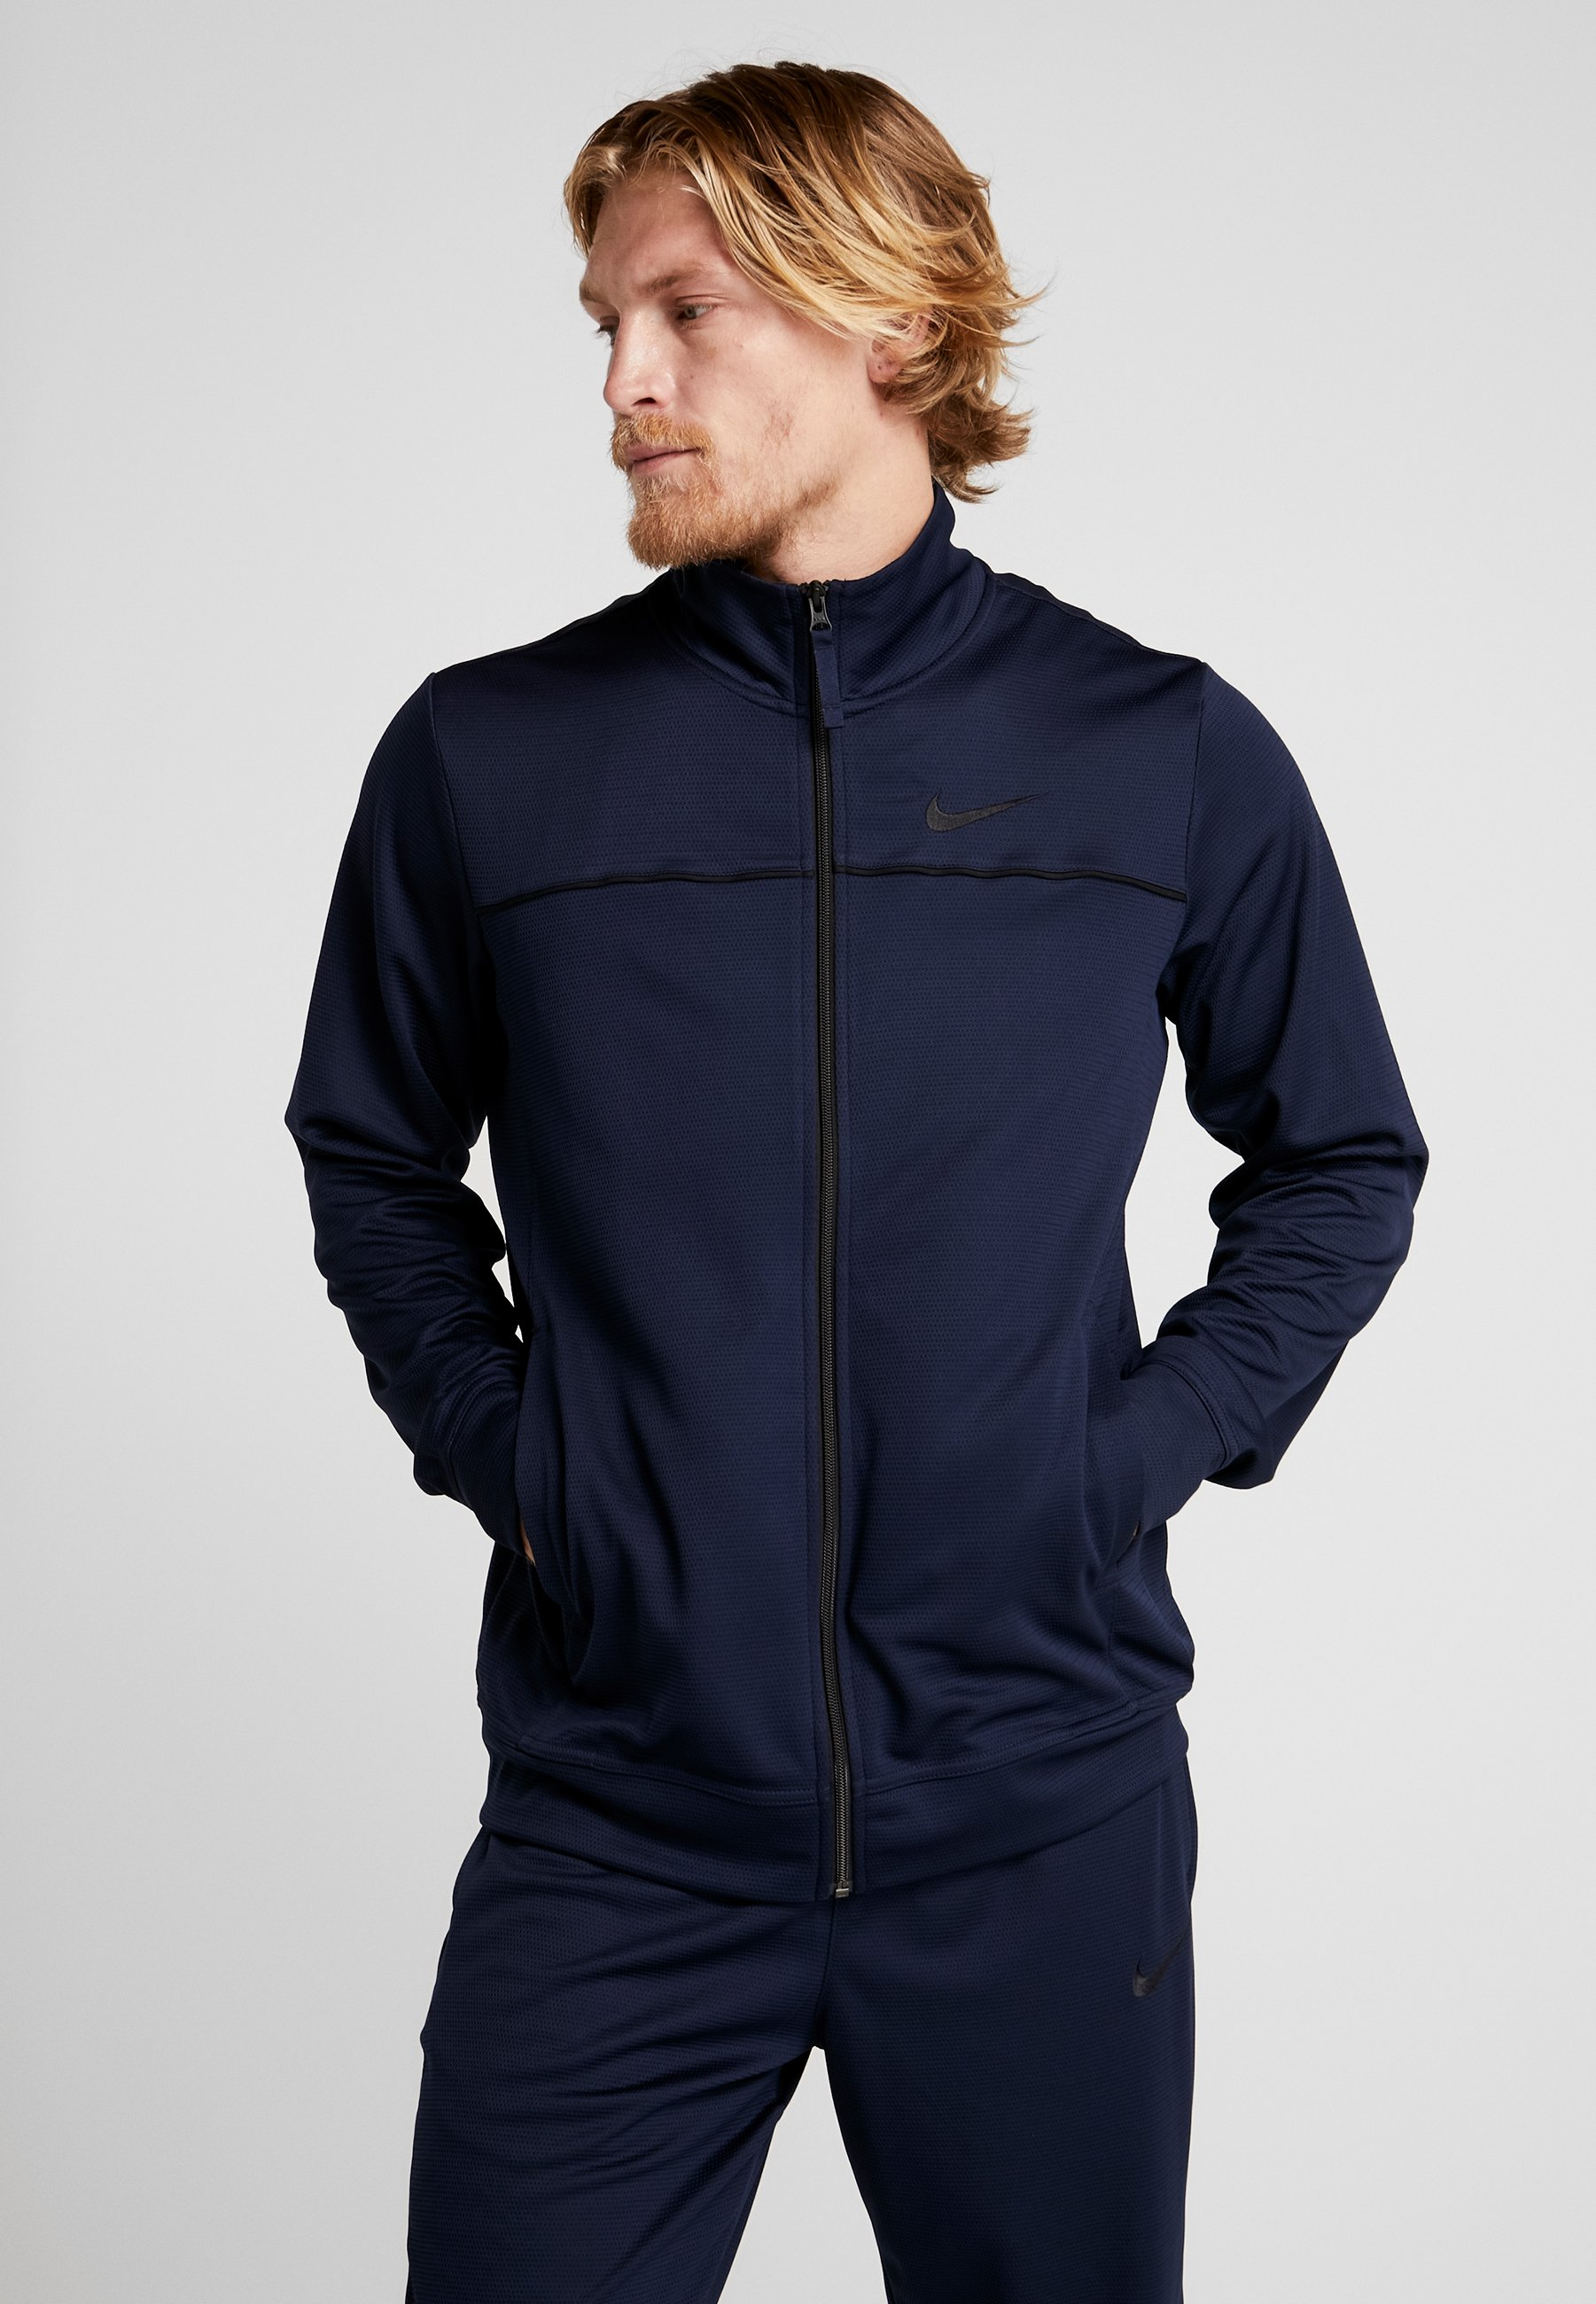 Obsidian Rivalry black Nike Performance TracksuitSurvêtement ZPkXiu